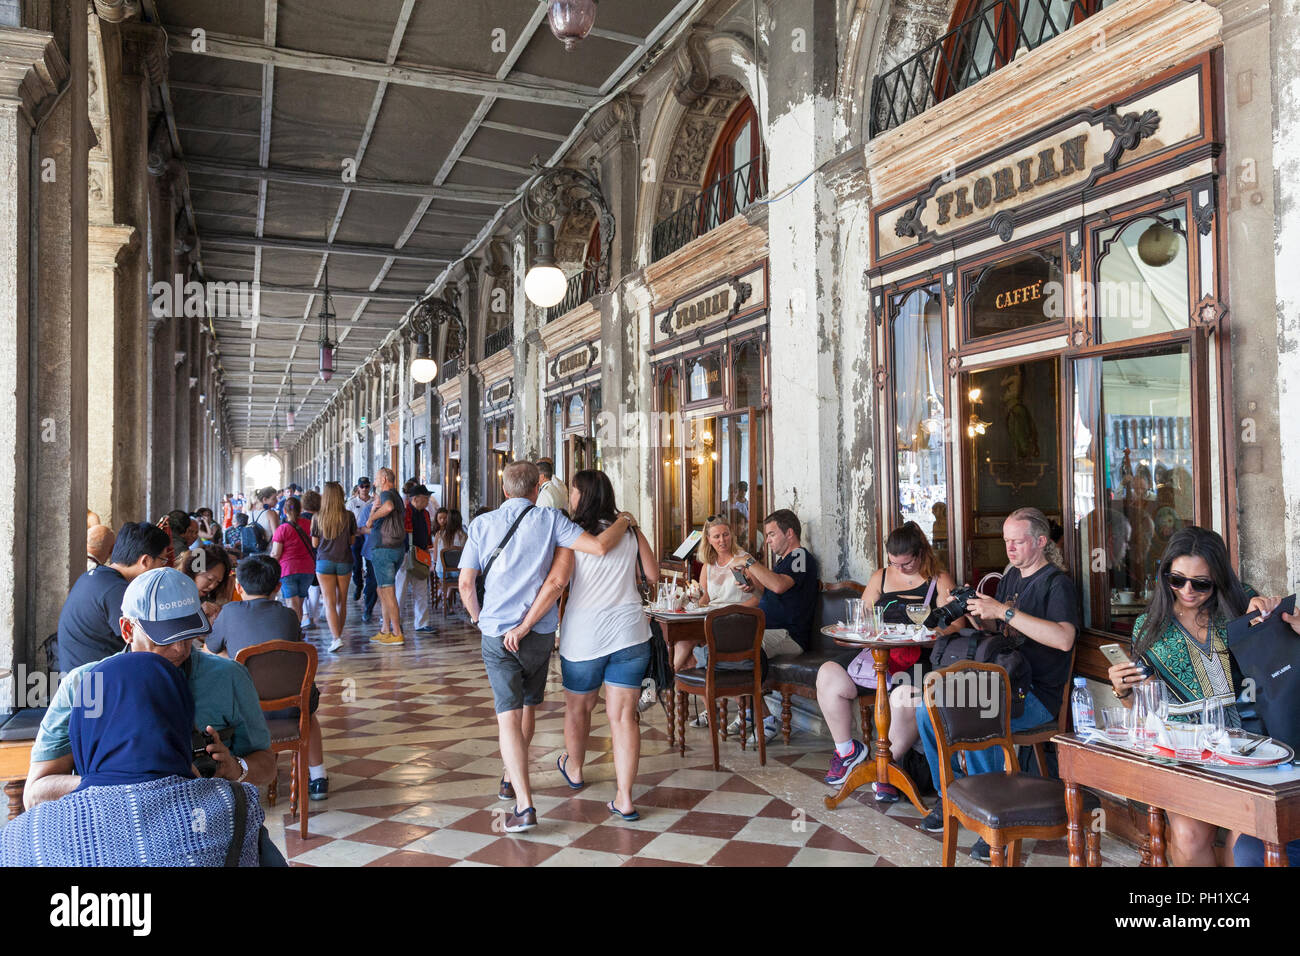 People dining at tables outside in shade under the arcade at Caffe Florian, Piazza San Marco, San Marco, Venice, Veneto, Italy during the European hea - Stock Image